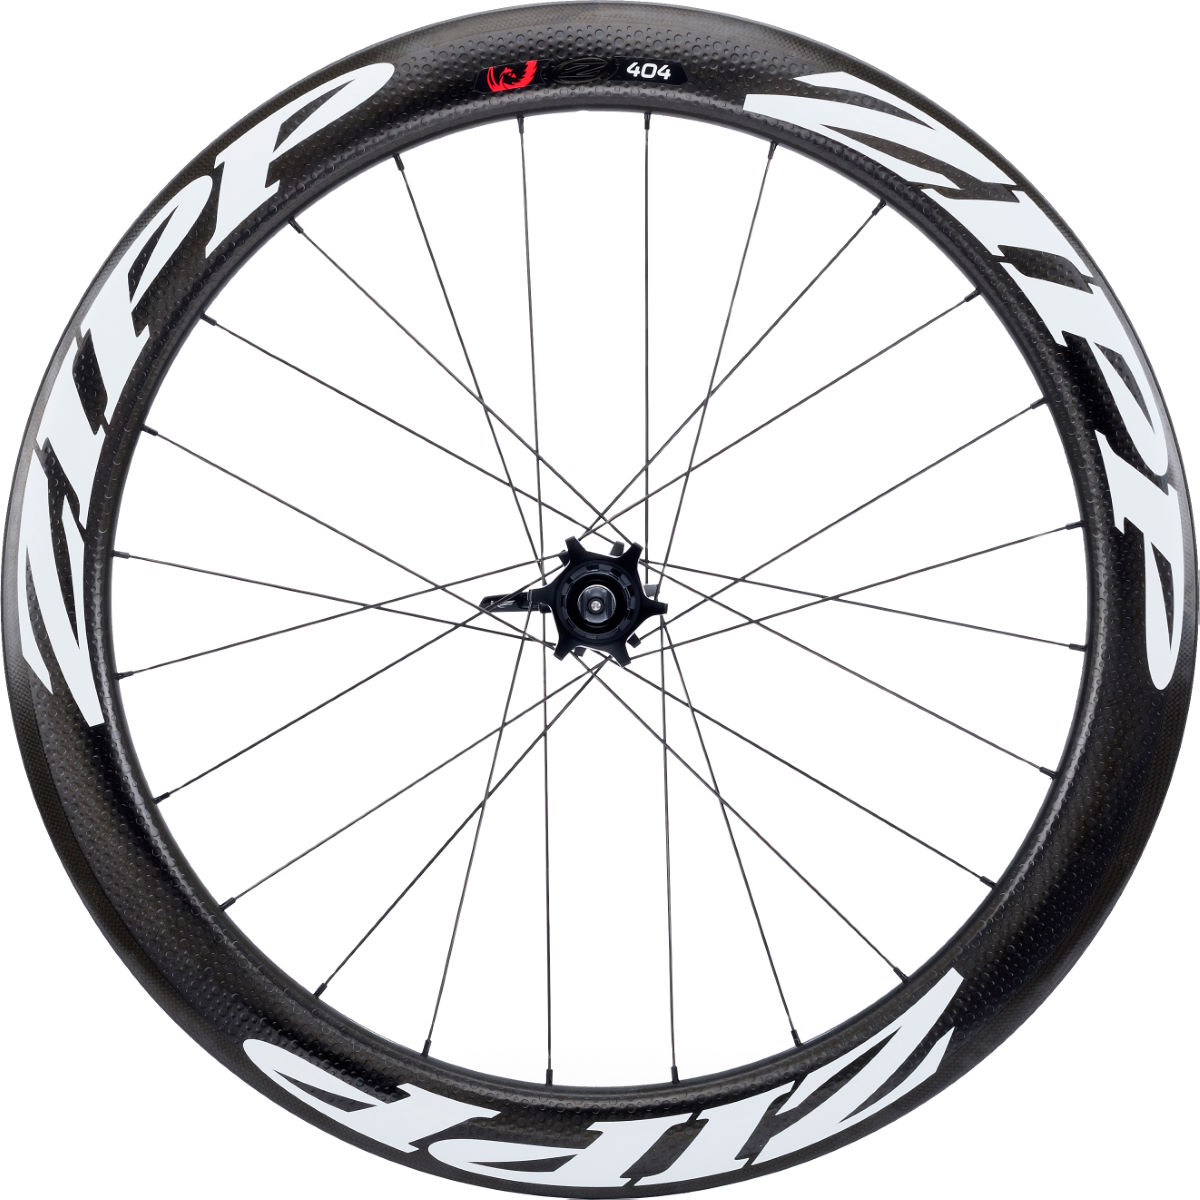 Zipp 404 Firecrest Carbon Tubular Disc Brake Rear Wheel   Back Wheels